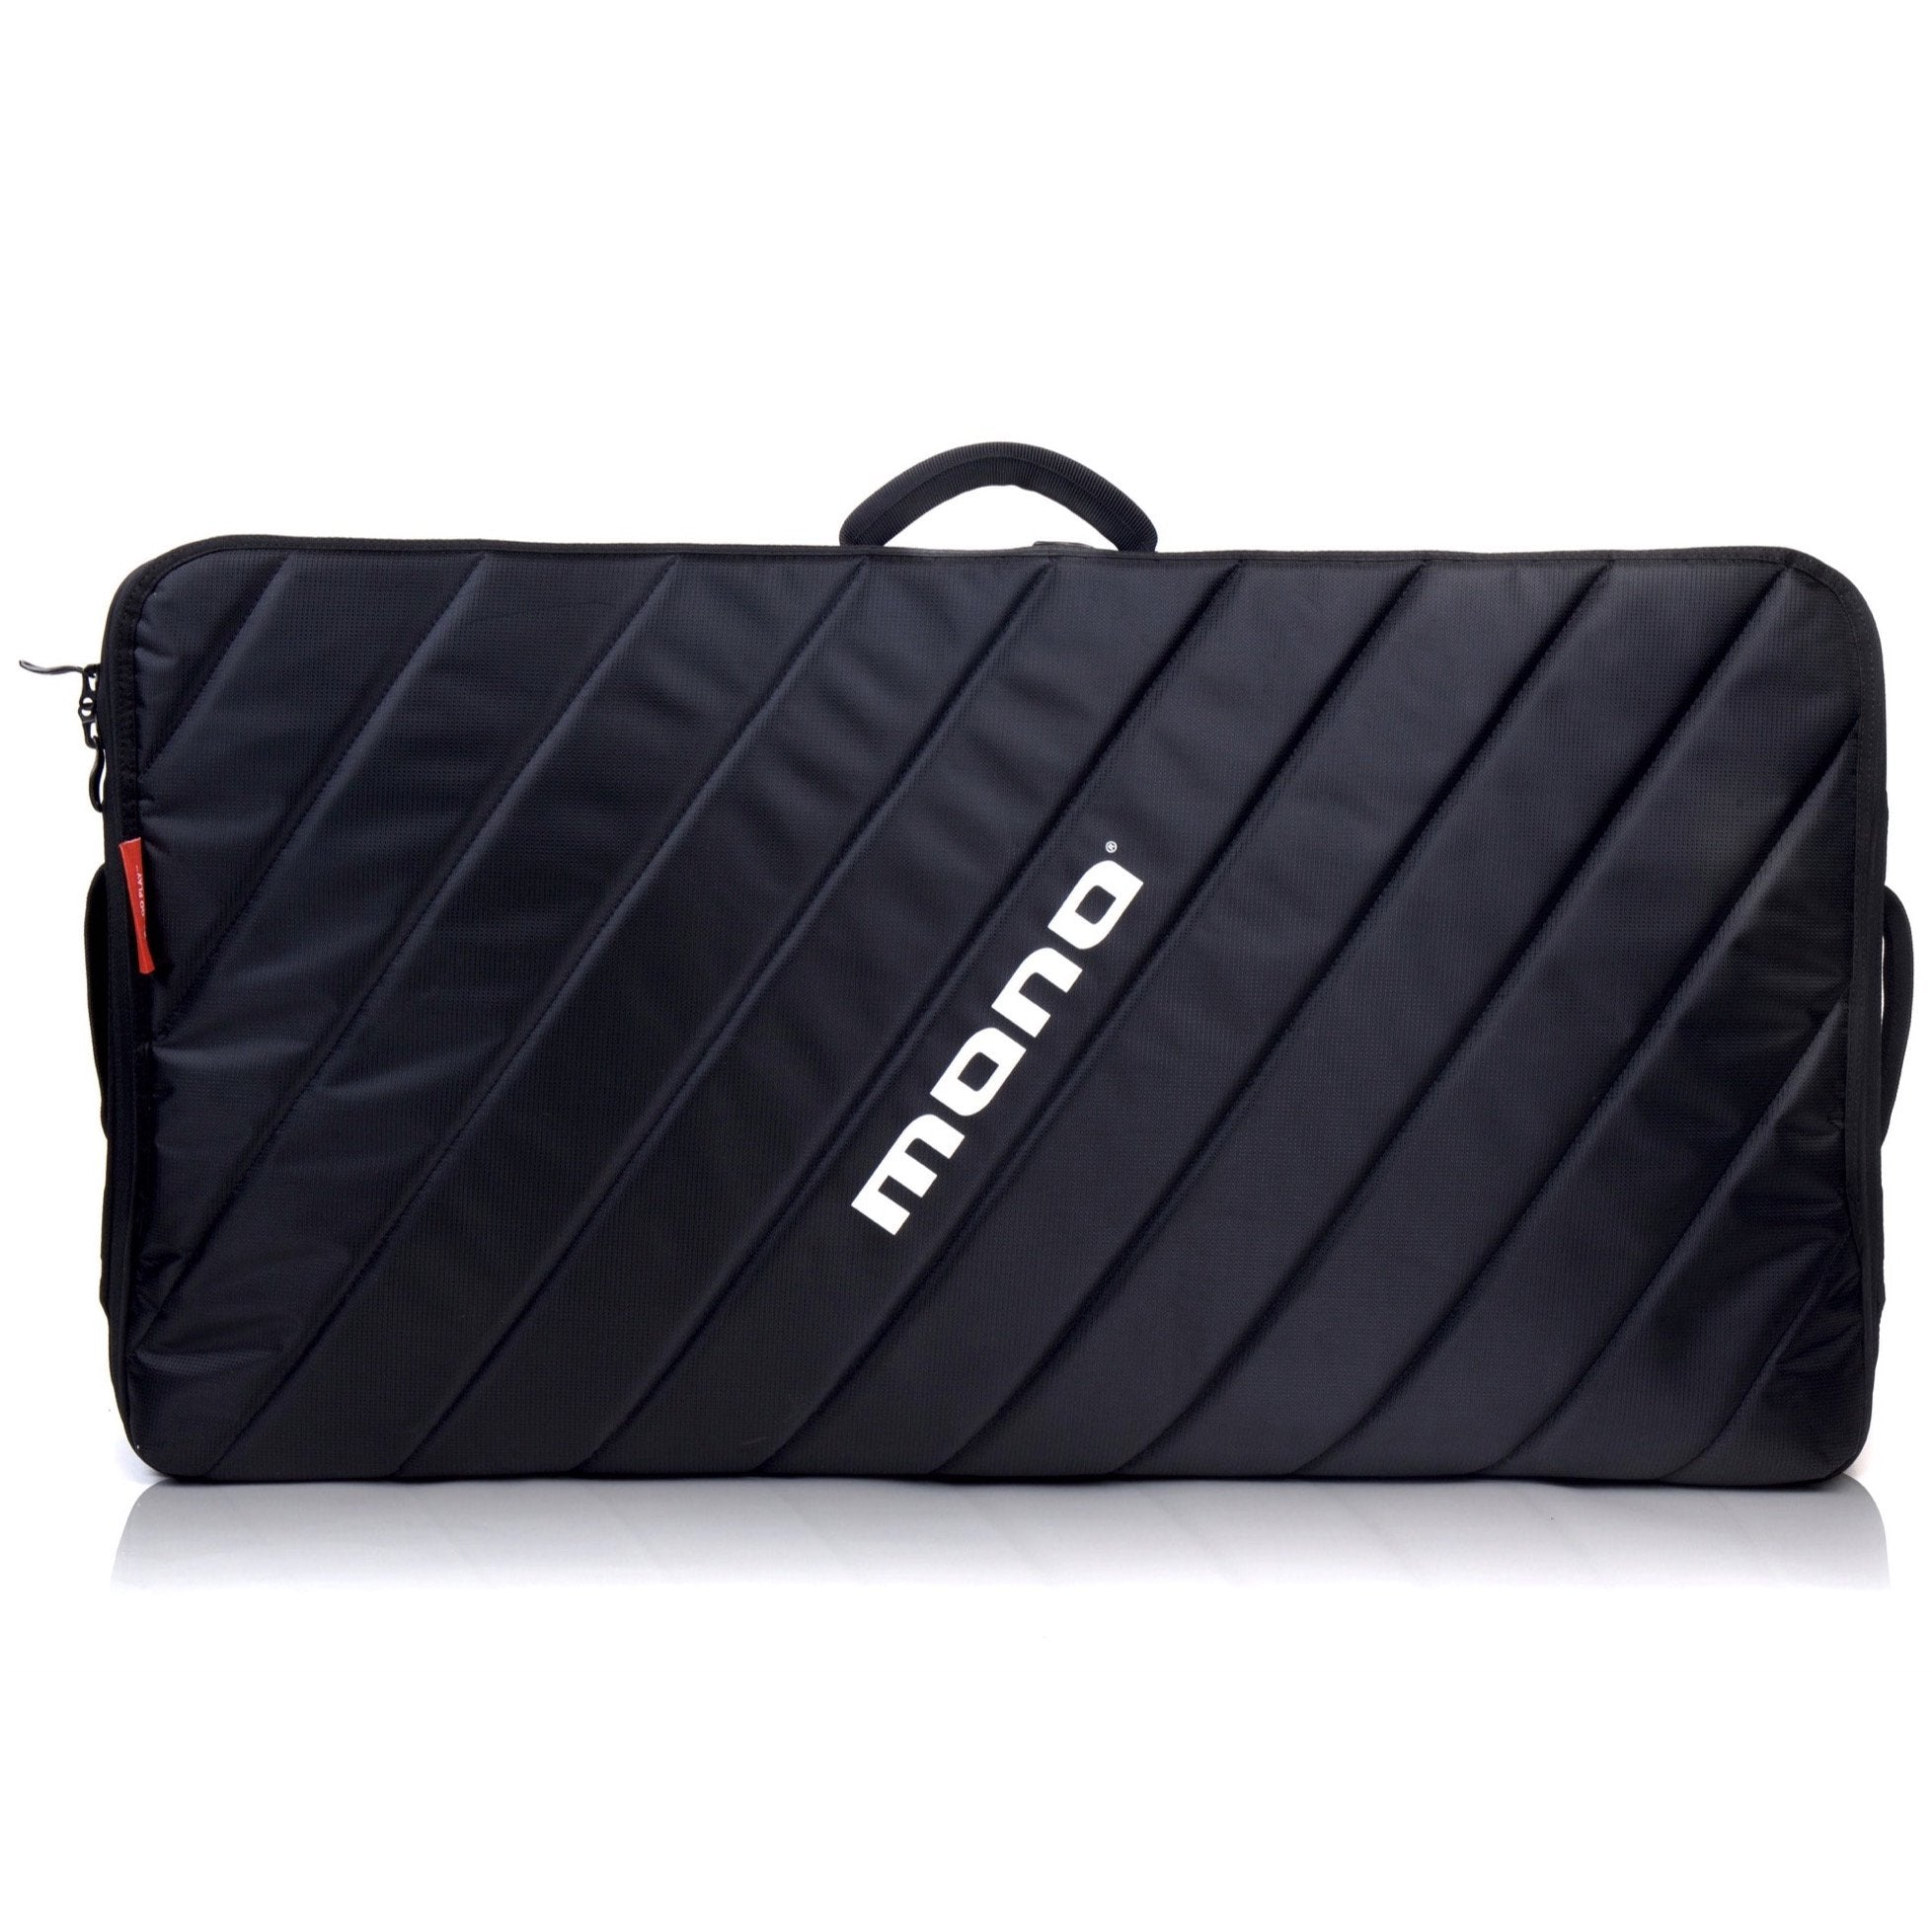 Mono Pro Version 2 Accessory Case, Black